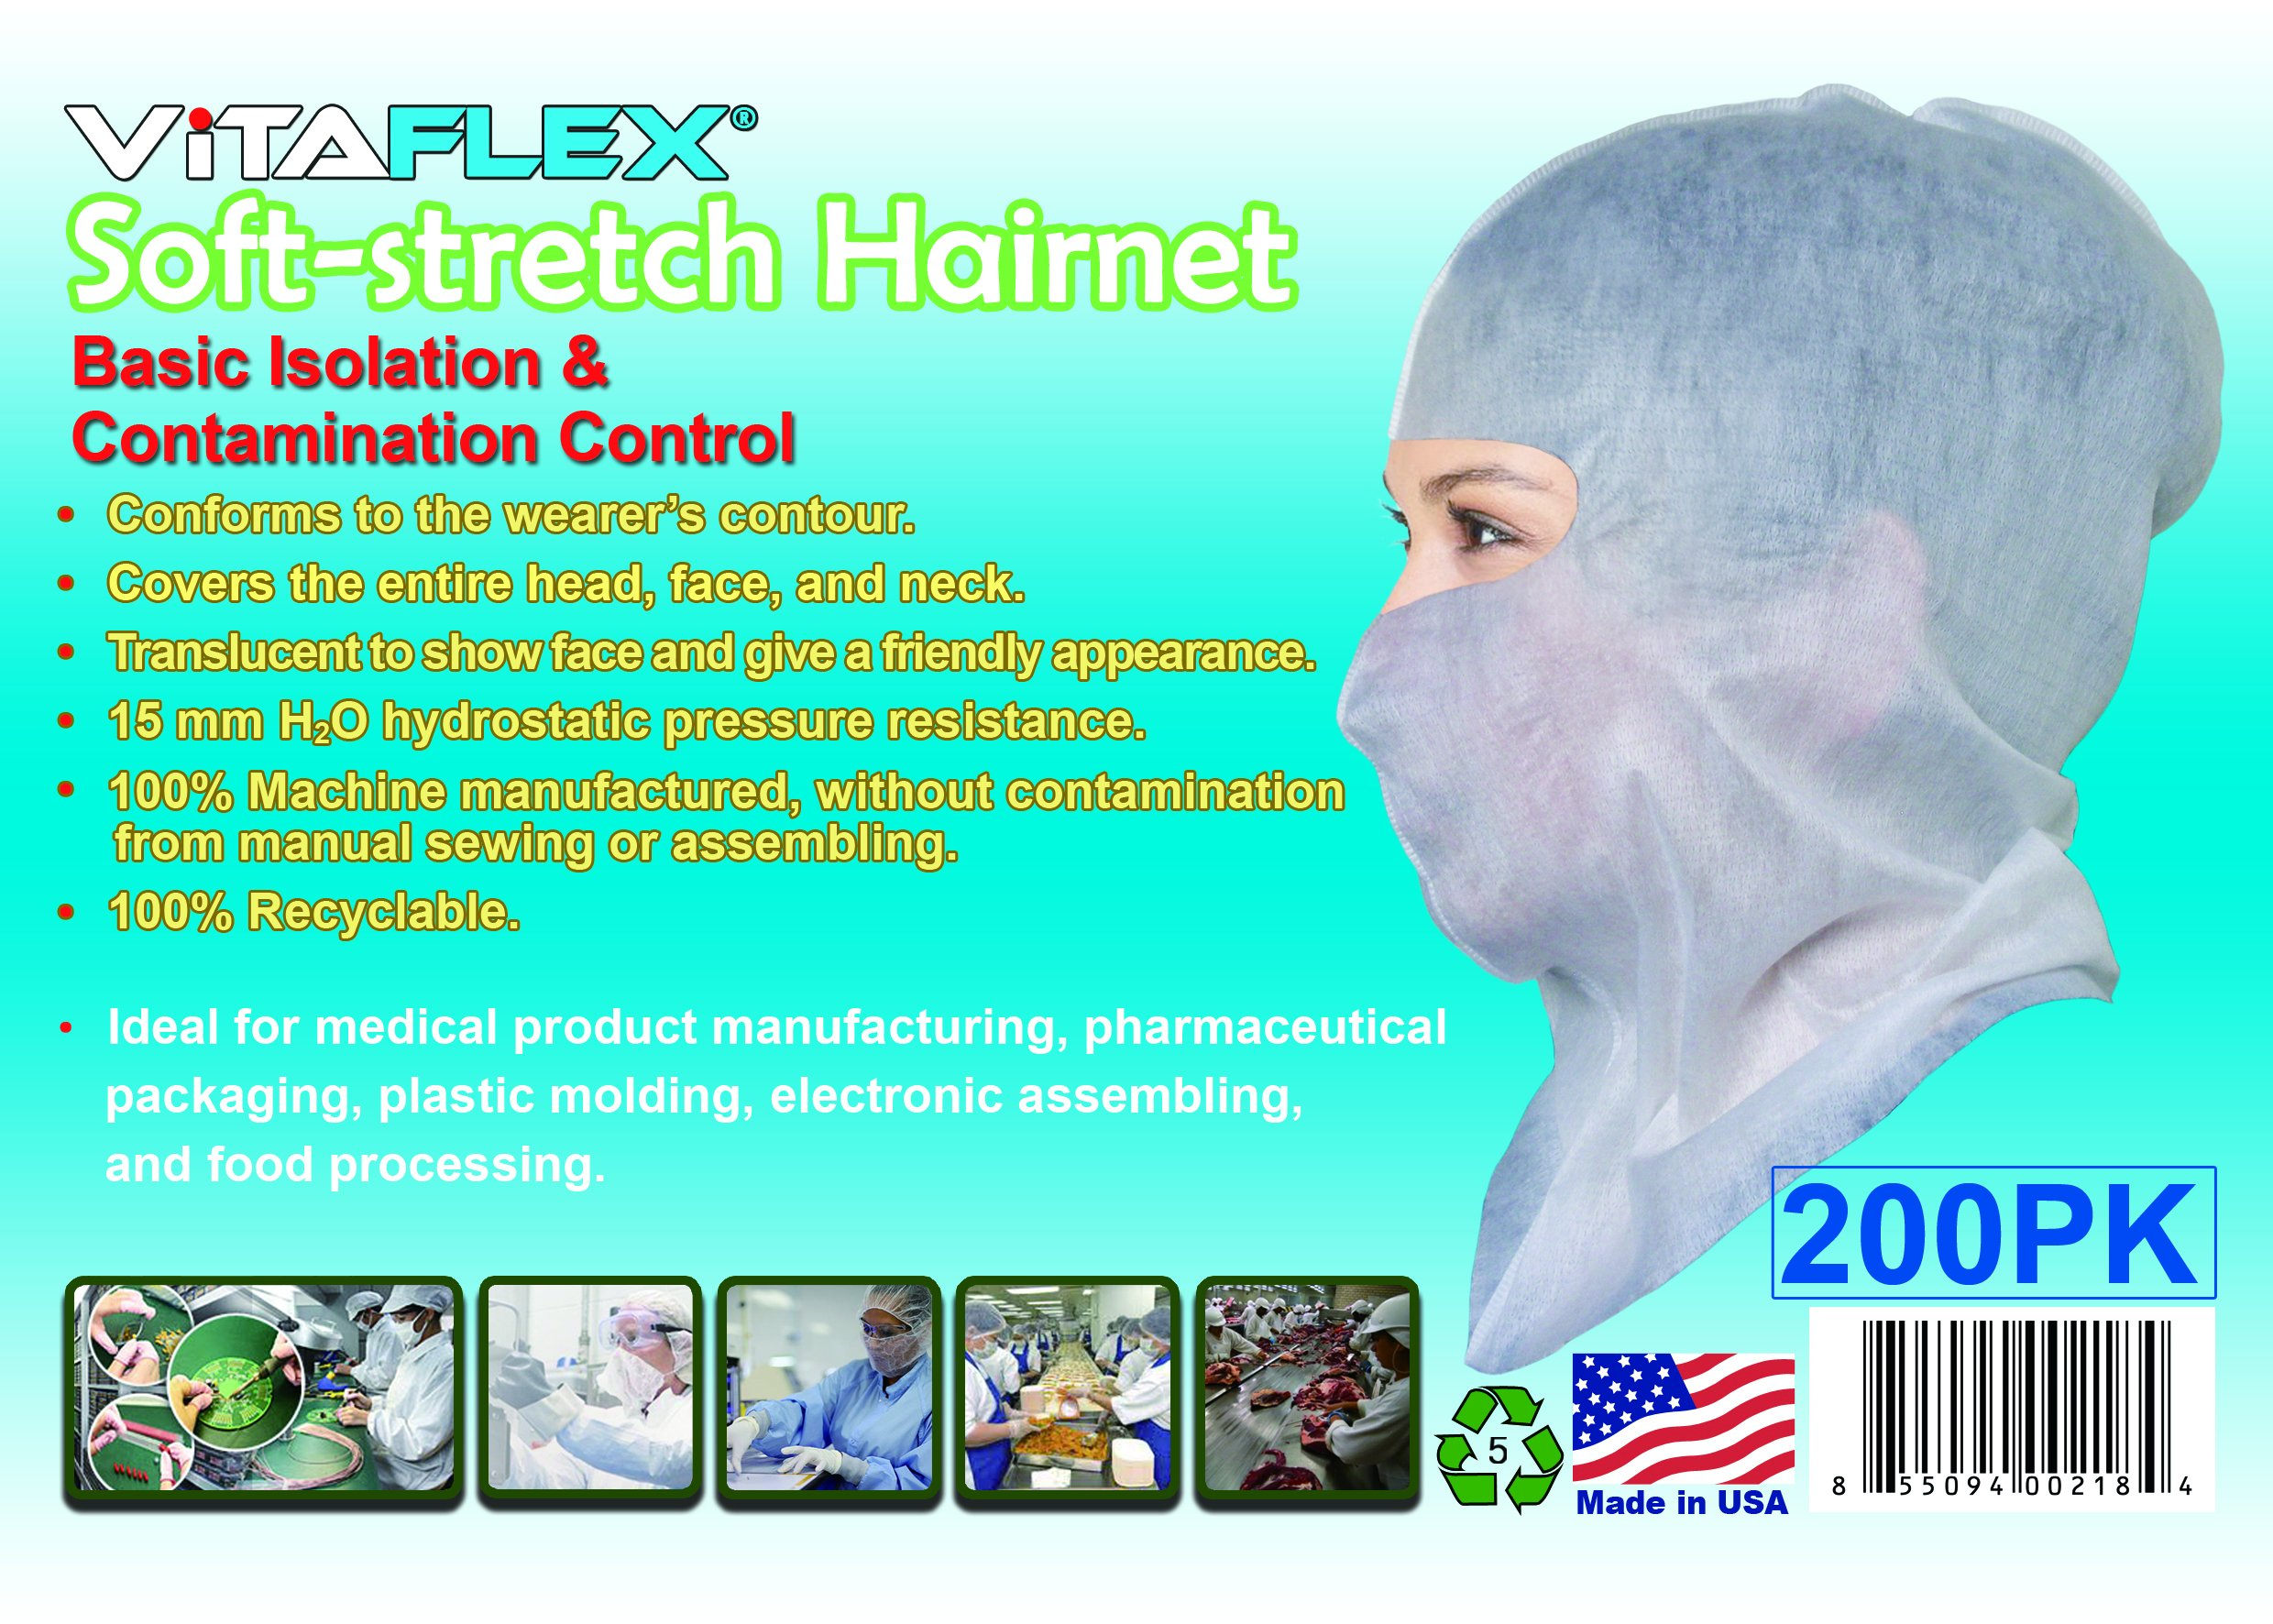 Soft-Stretch Disposable Hood, Headcover for Cleanroom or Healthcare Workers (more coverage than wearing a bouffant cap, a mask and a beard cover), $0.46 Ea, 200pcs Per Pack